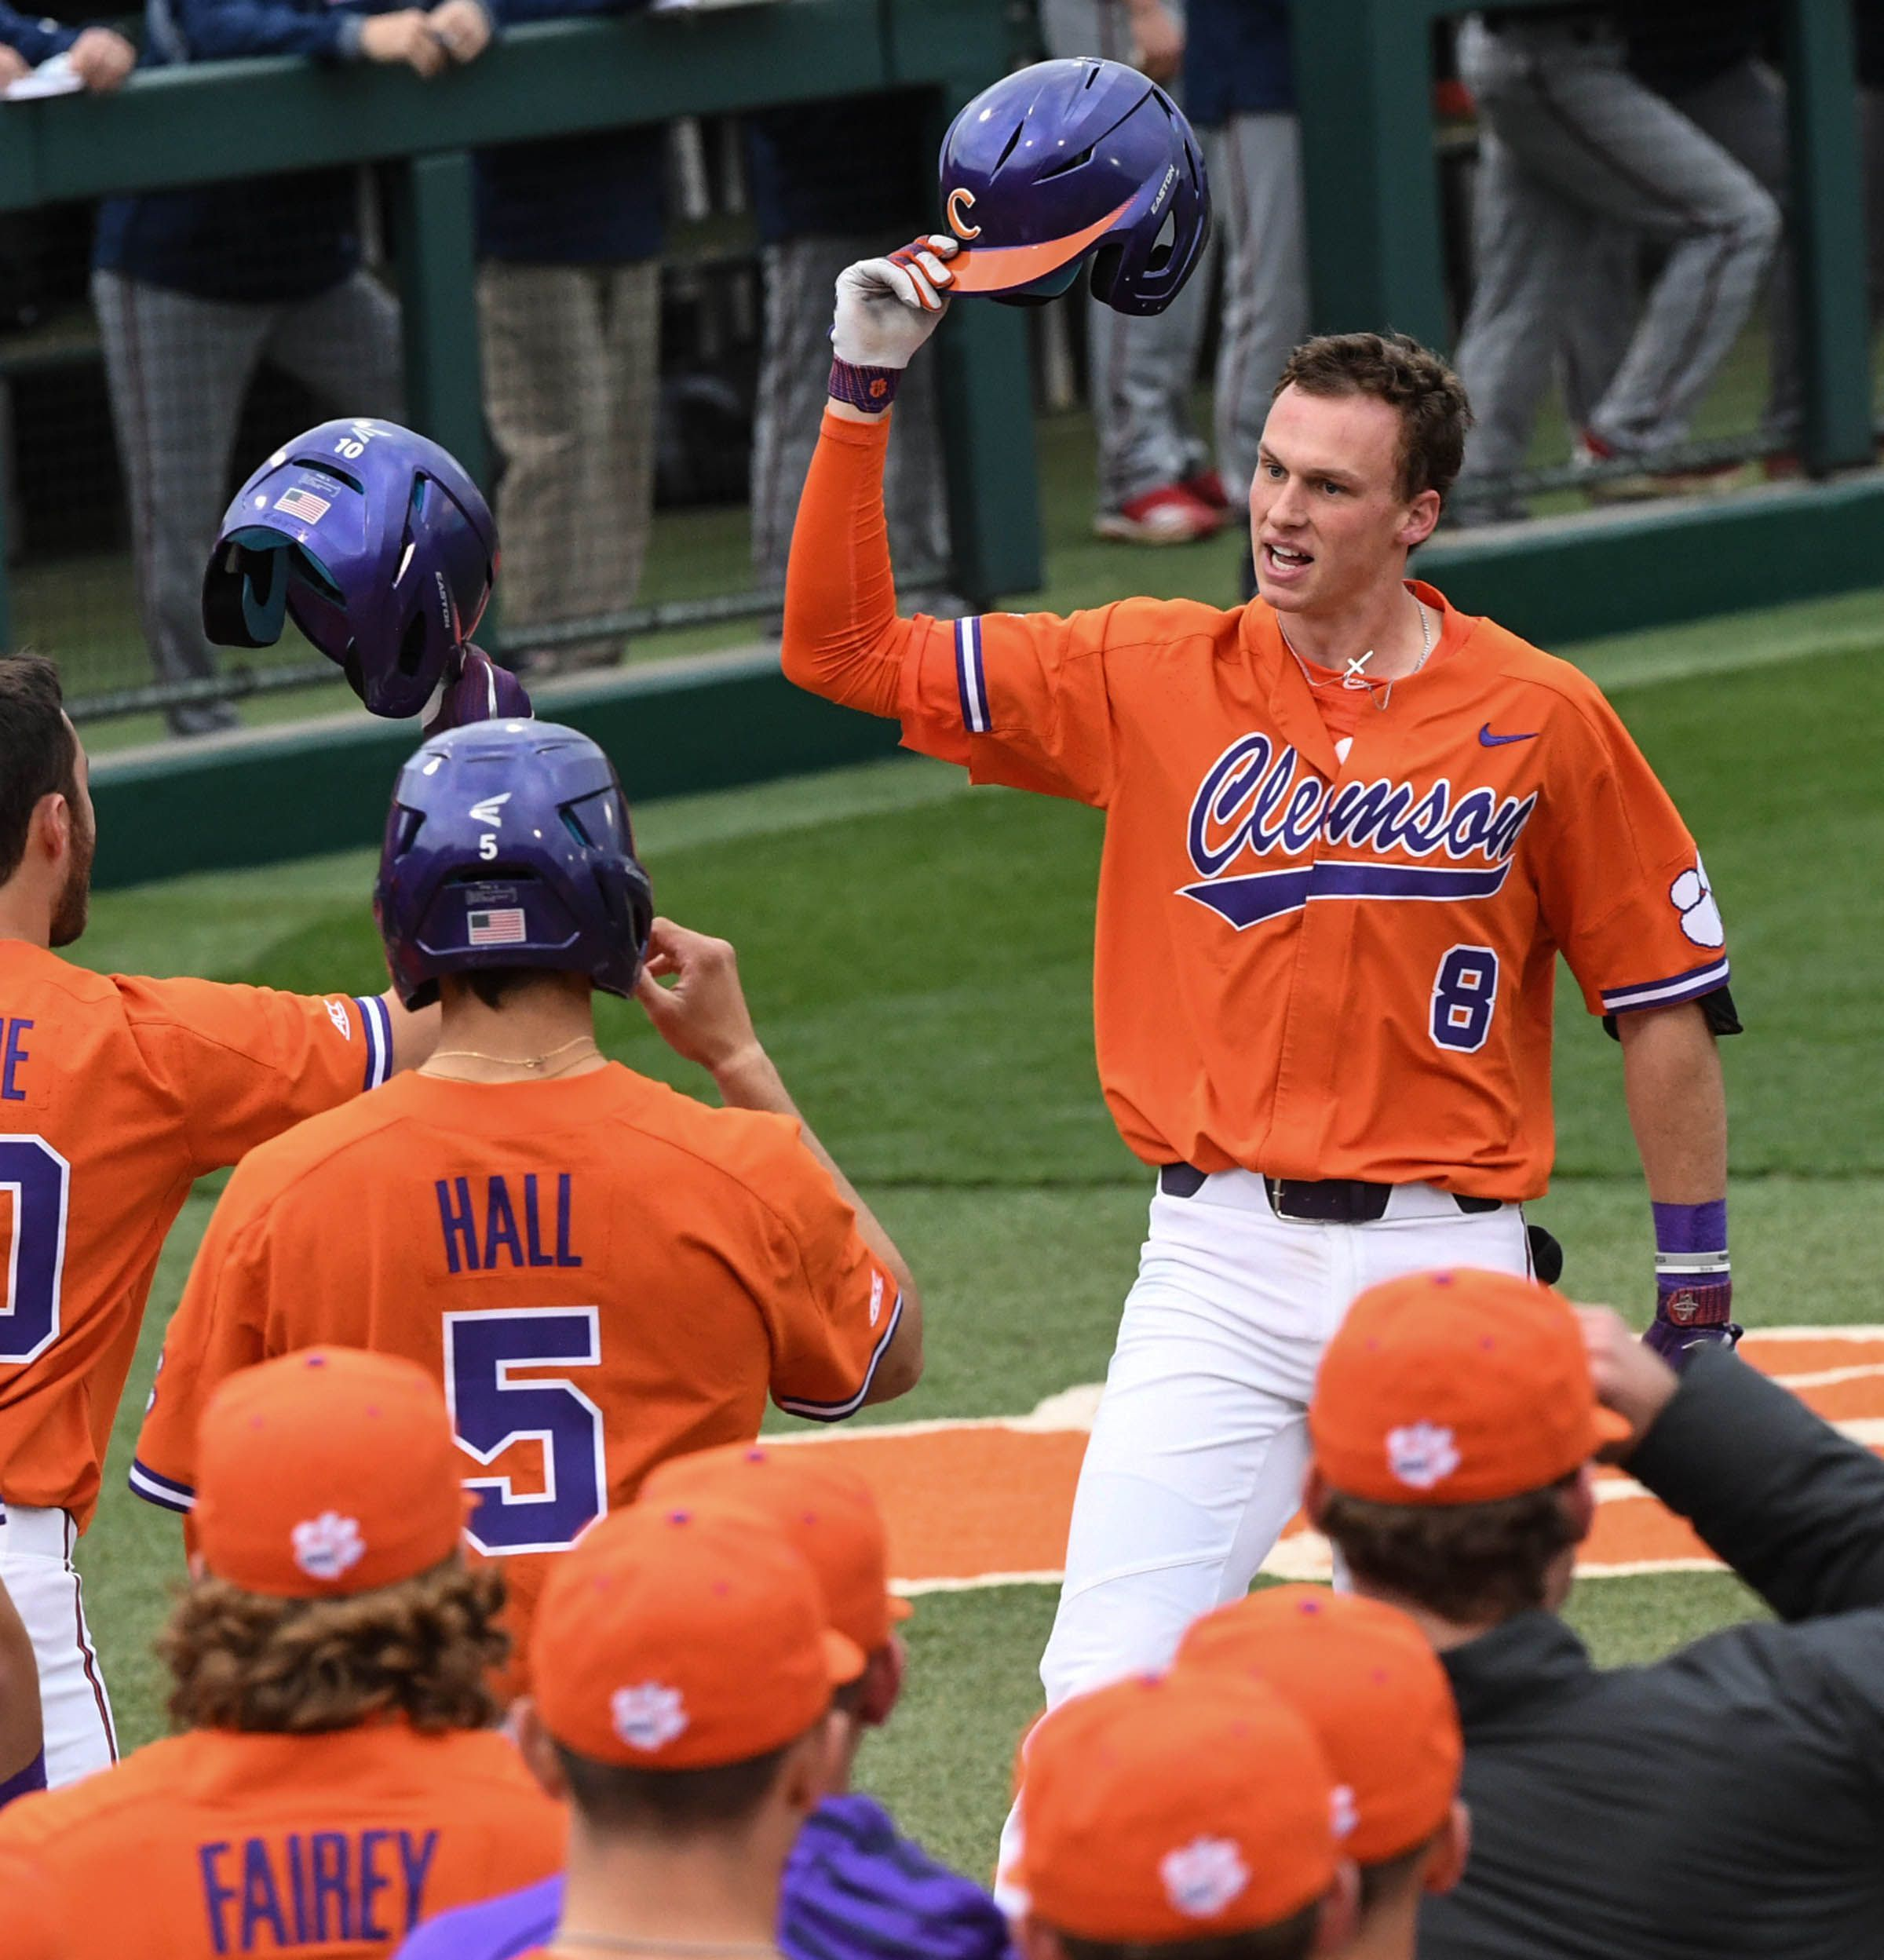 Clemson baseball team still playing long ball as 2019